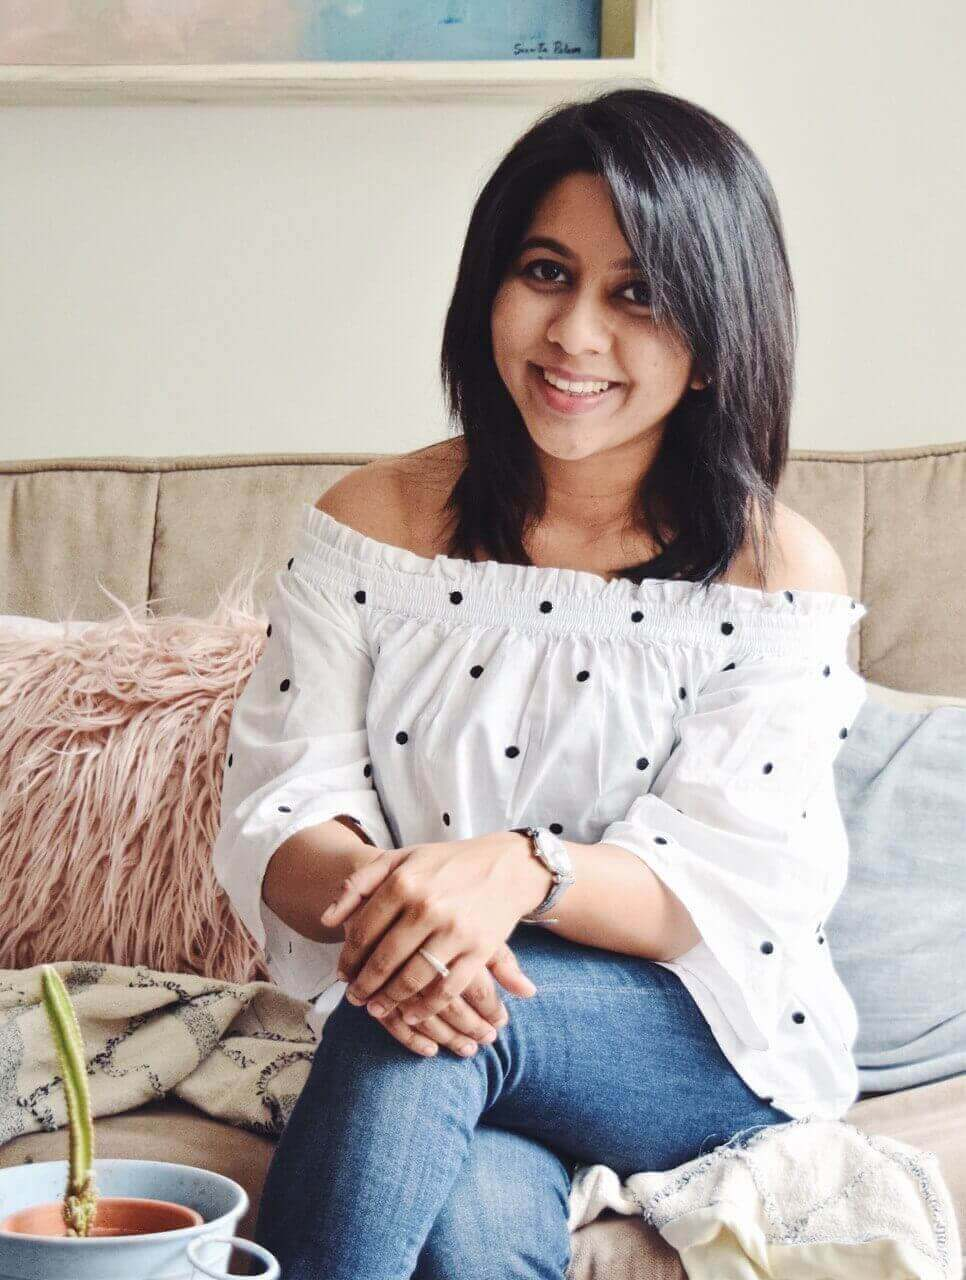 In conversation with Sunita Yogesh, Interior designer based in Chennai